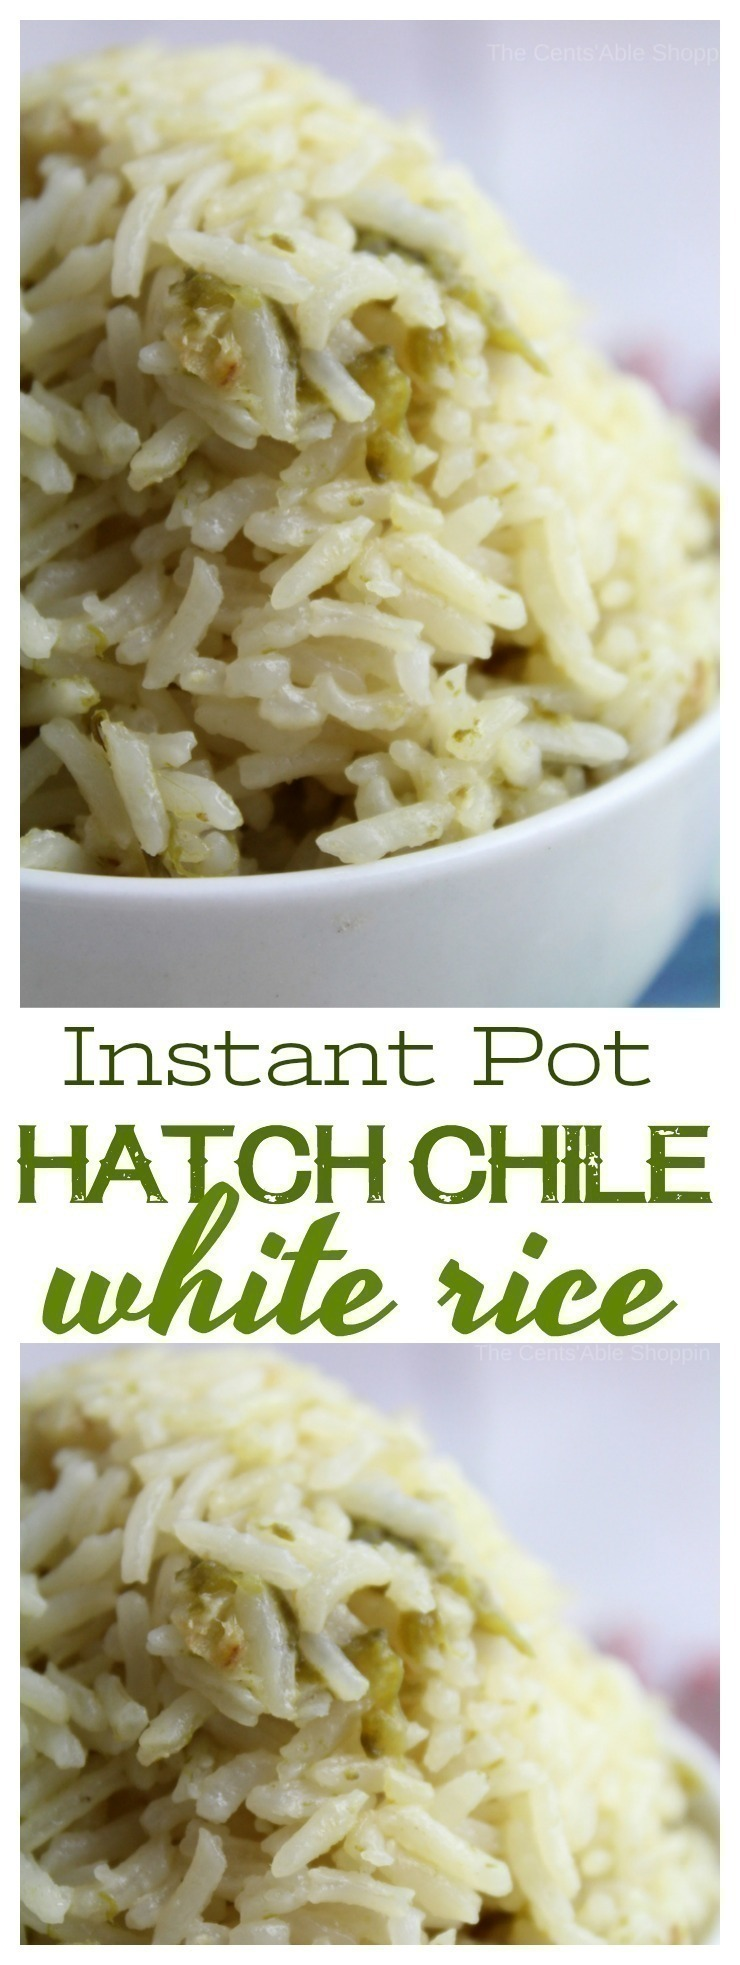 Kick traditional white rice up a notch with the addition of green chiles and minced garlic in a flavorful chicken broth.  #InstantPot #HatchChiles #rice #PressureCooker #rice